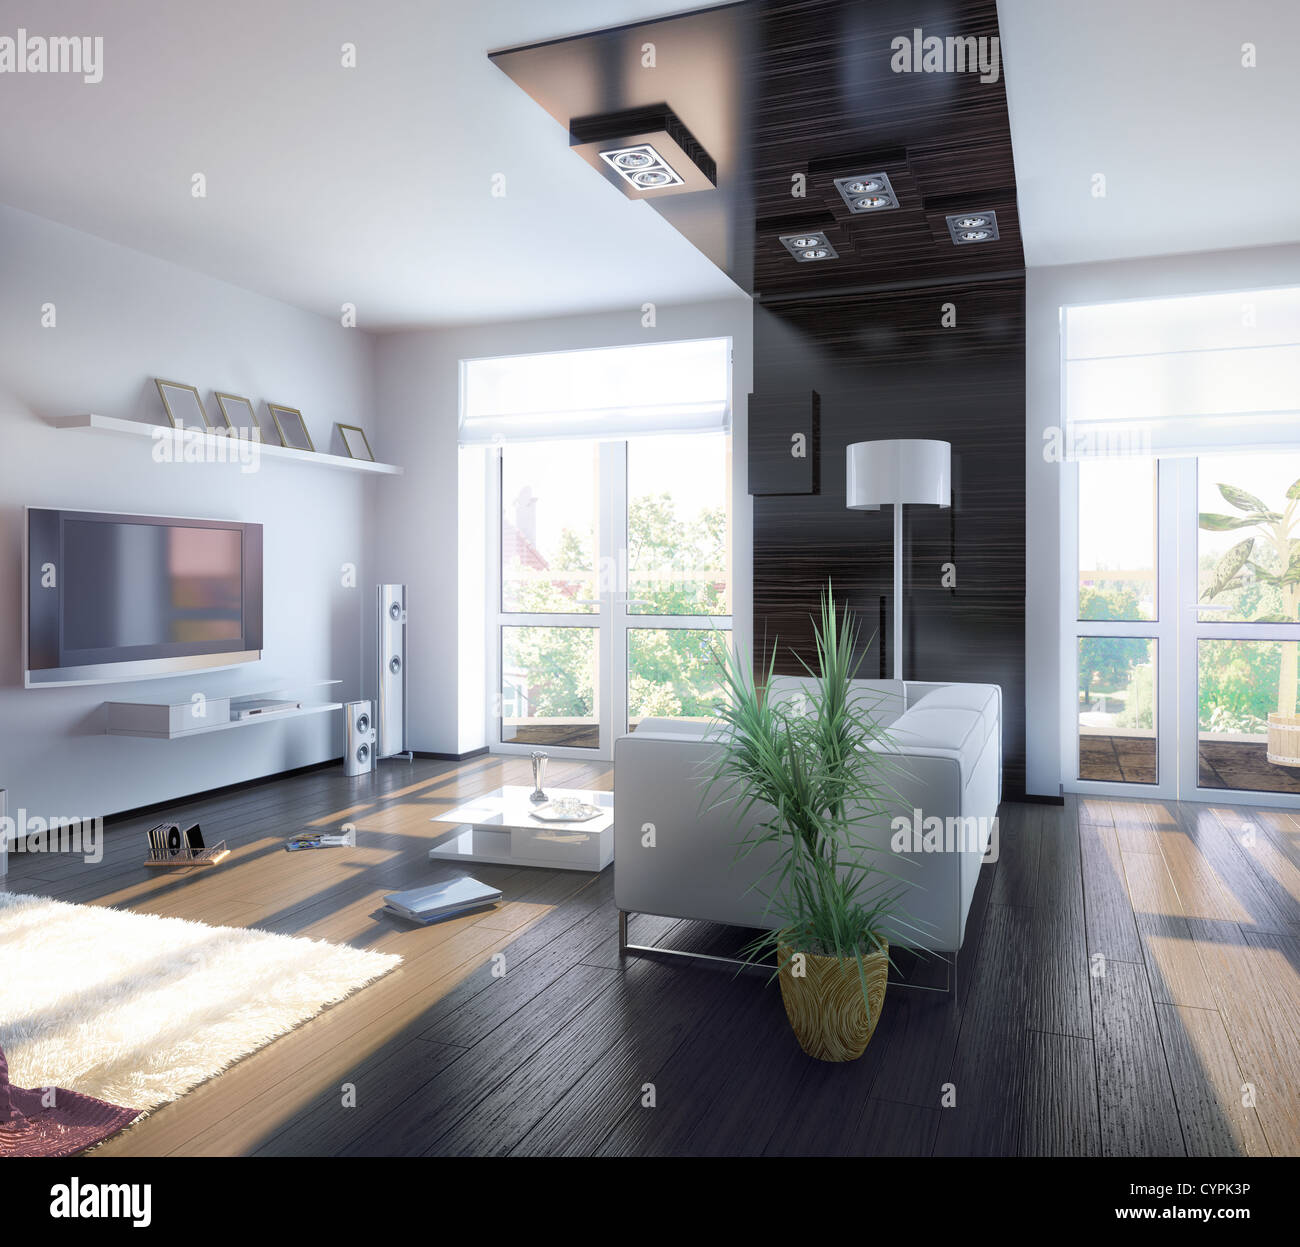 modern living room design (illustration) - Stock Image